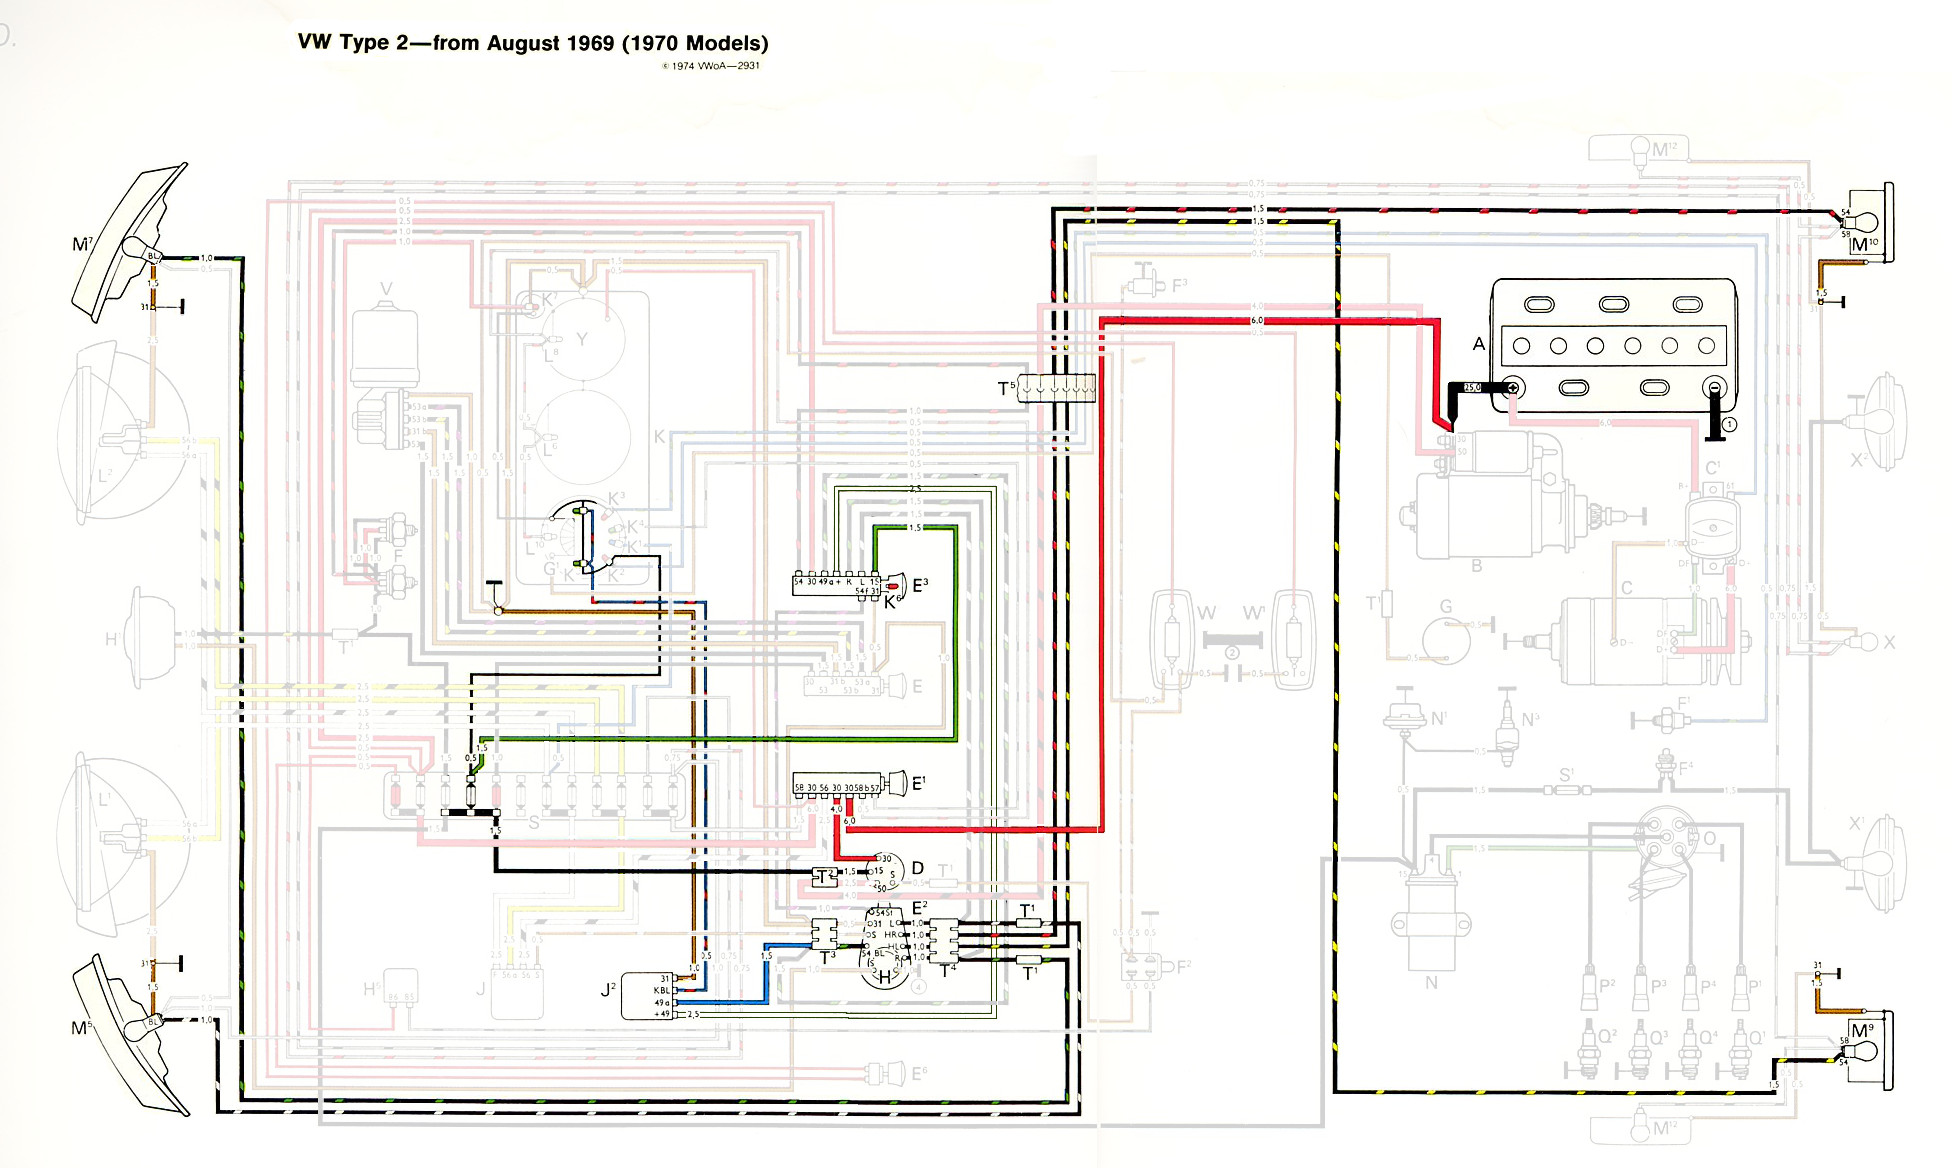 74 Beetle Wiring Diagram For Lights On Reveolution Of 73 Vw Alternator Bus Relays Experts U2022 Rh Evilcloud Co Uk 1971 Super